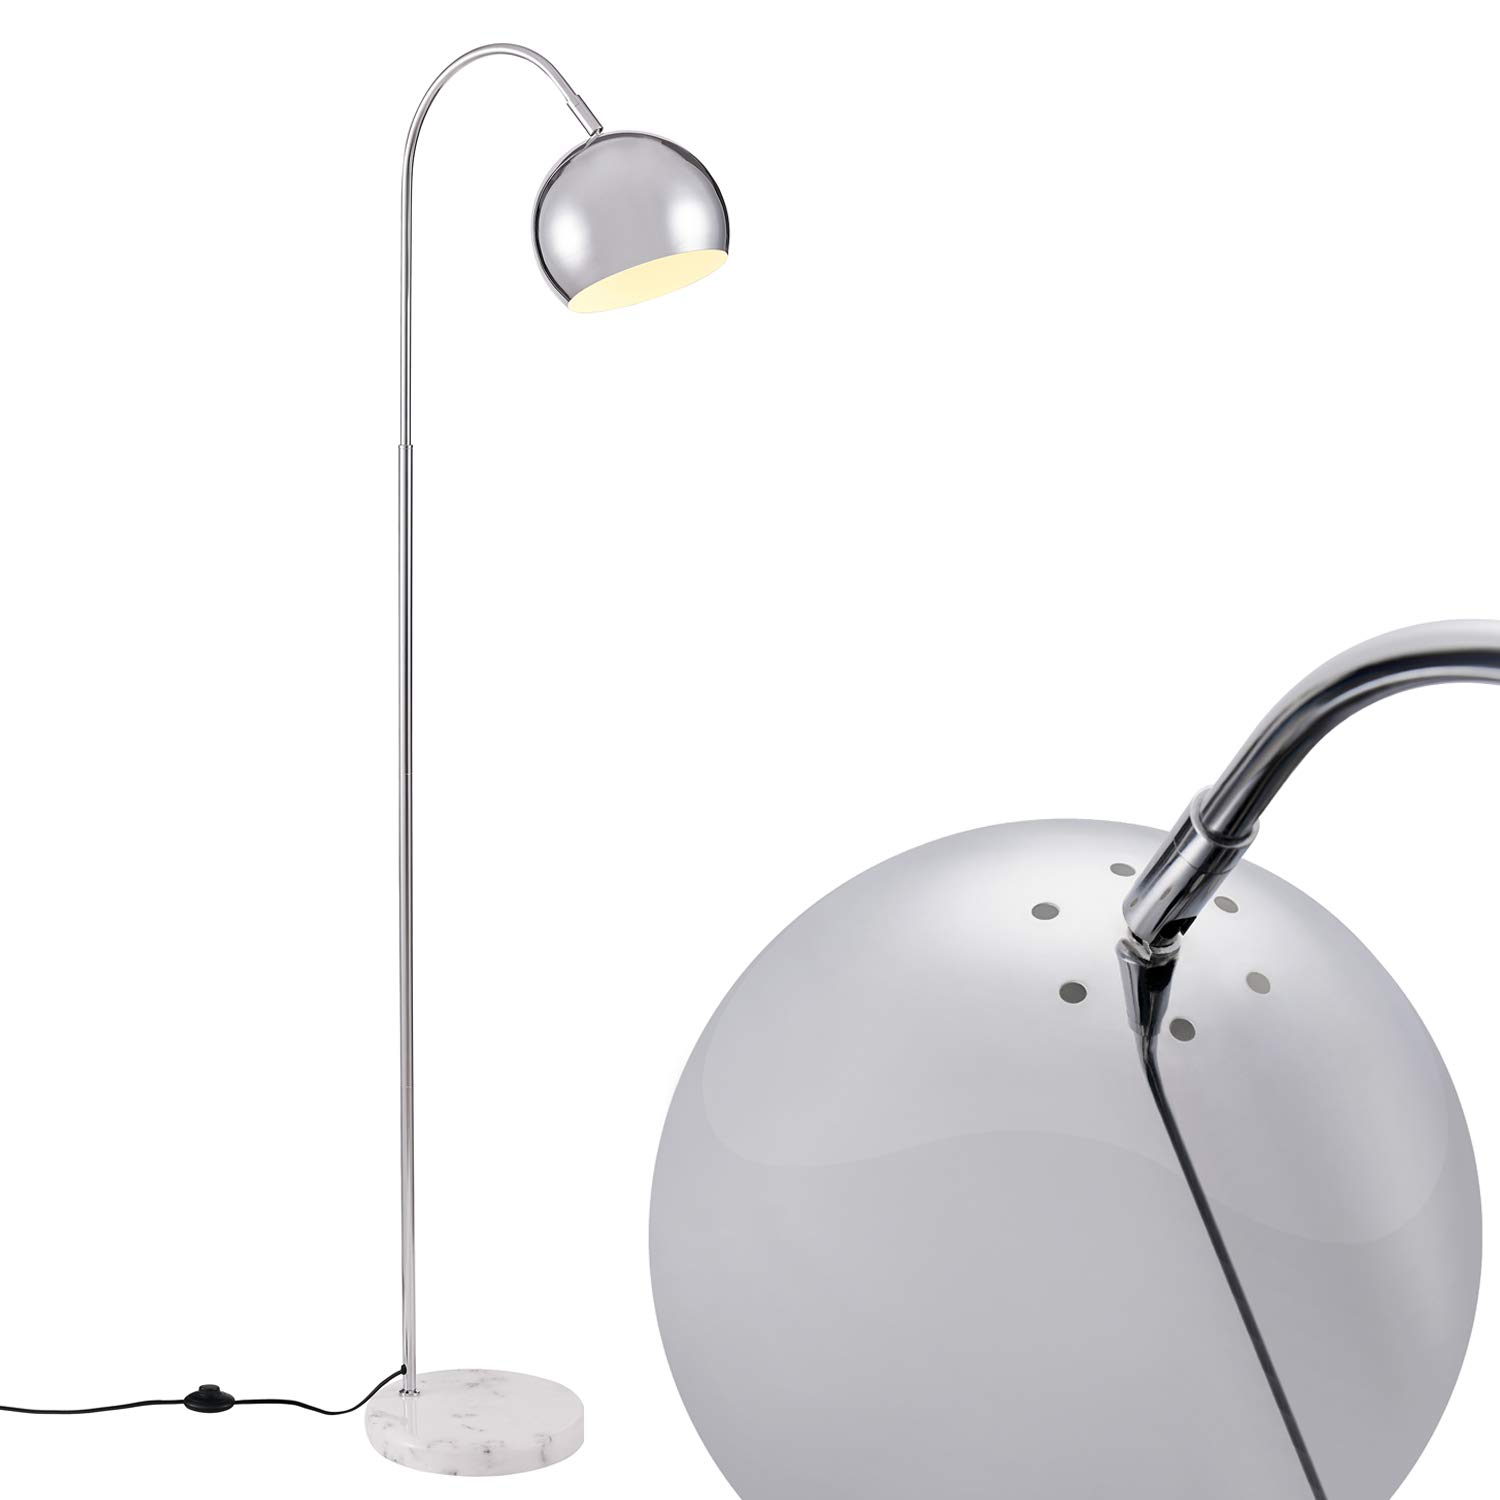 Arched White Floor Lamp, Modern Light with White Marble Base Archiology 61